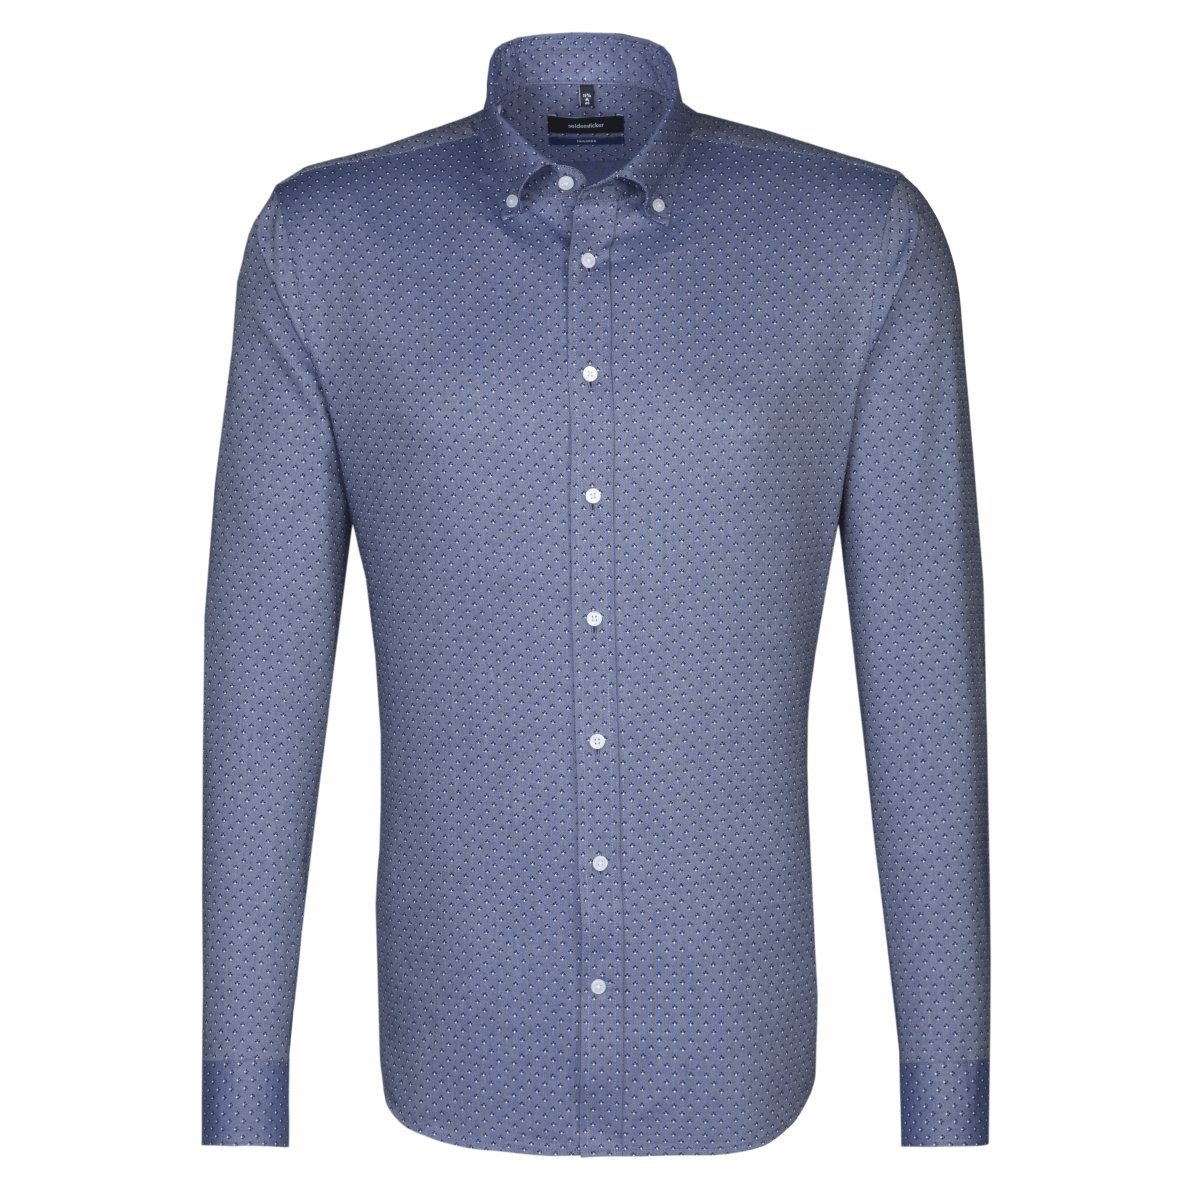 Herren seidensticker Businesshemd Tailored, Button-Down-Kragen blau | 04048869363801